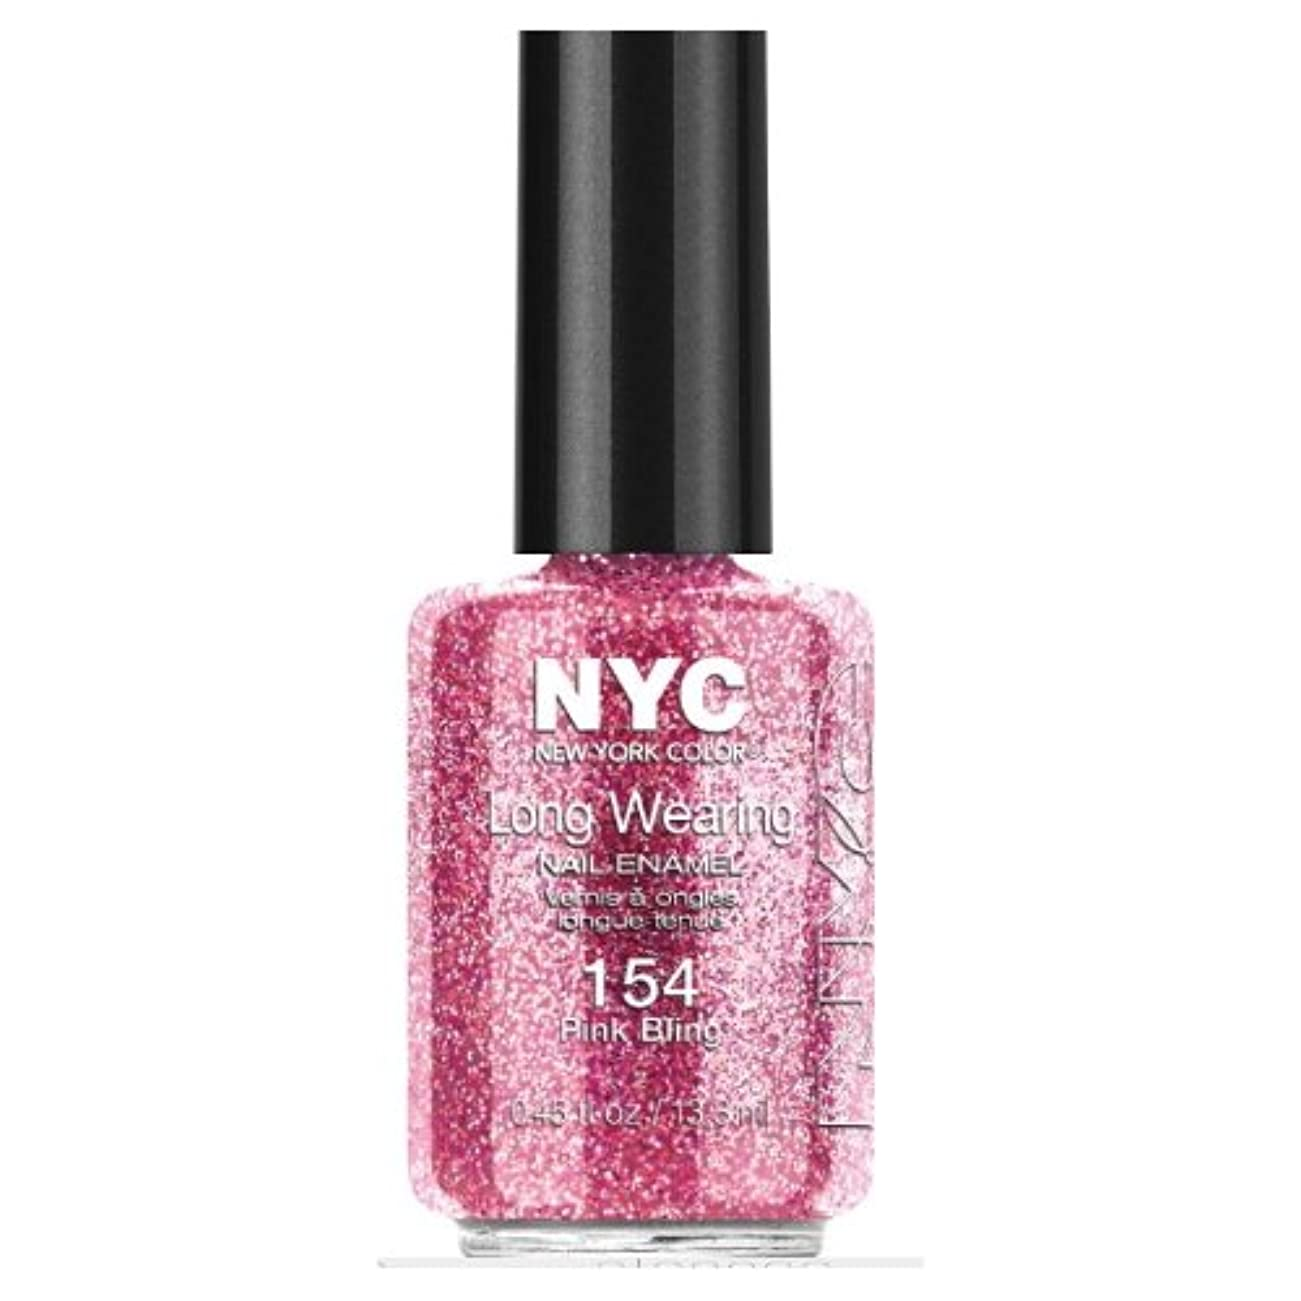 NYC Long Wearing Nail Enamel - Pink Bling (並行輸入品)